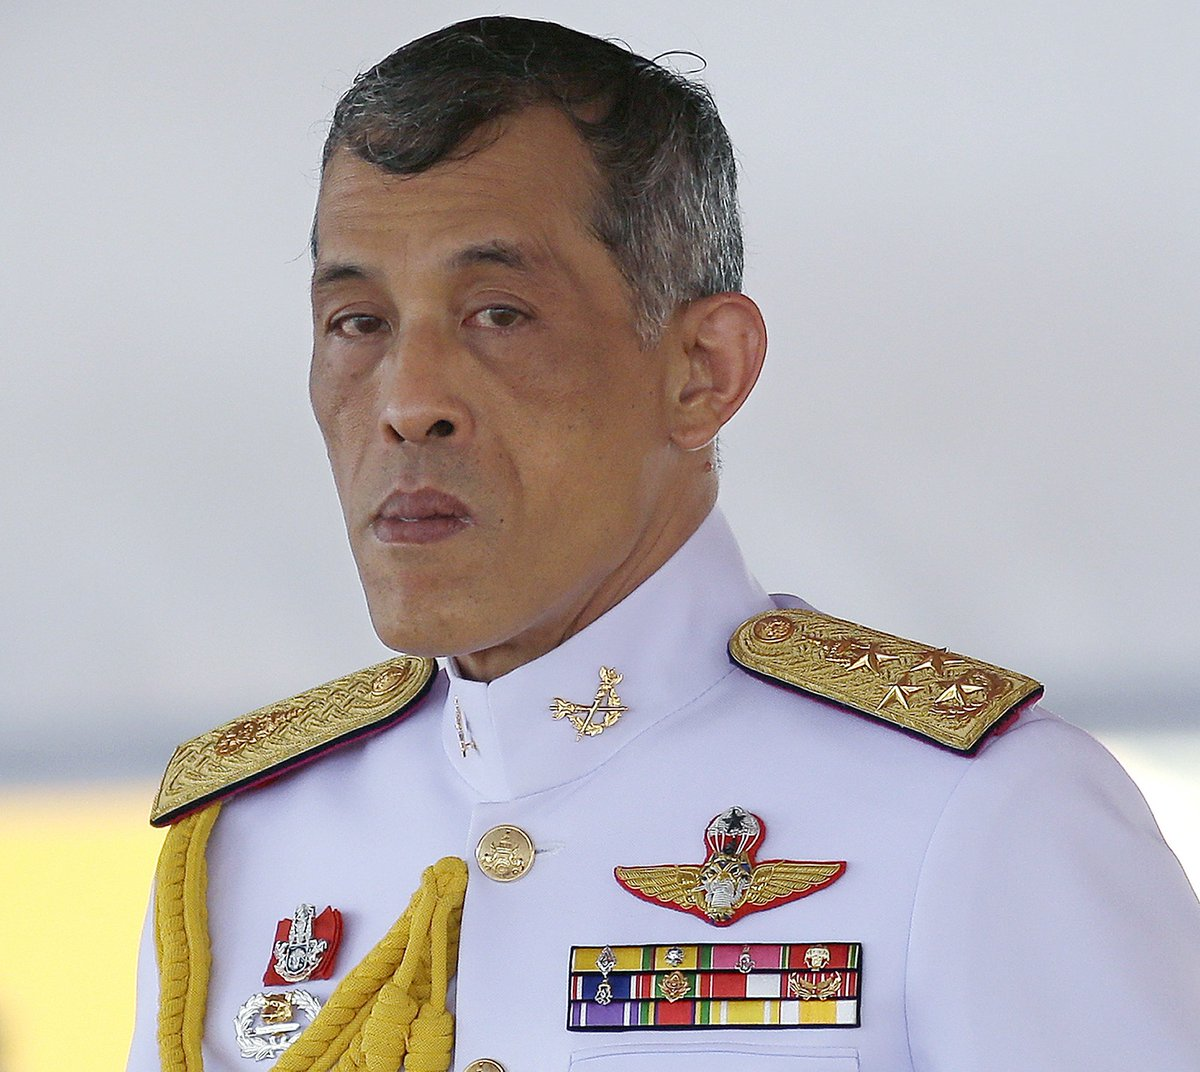 Thai PM says Crown Prince Maha Vajiralongkorn will be the new monarch https://t.co/fGGSlNlxNr https://t.co/9BpldEzVzL